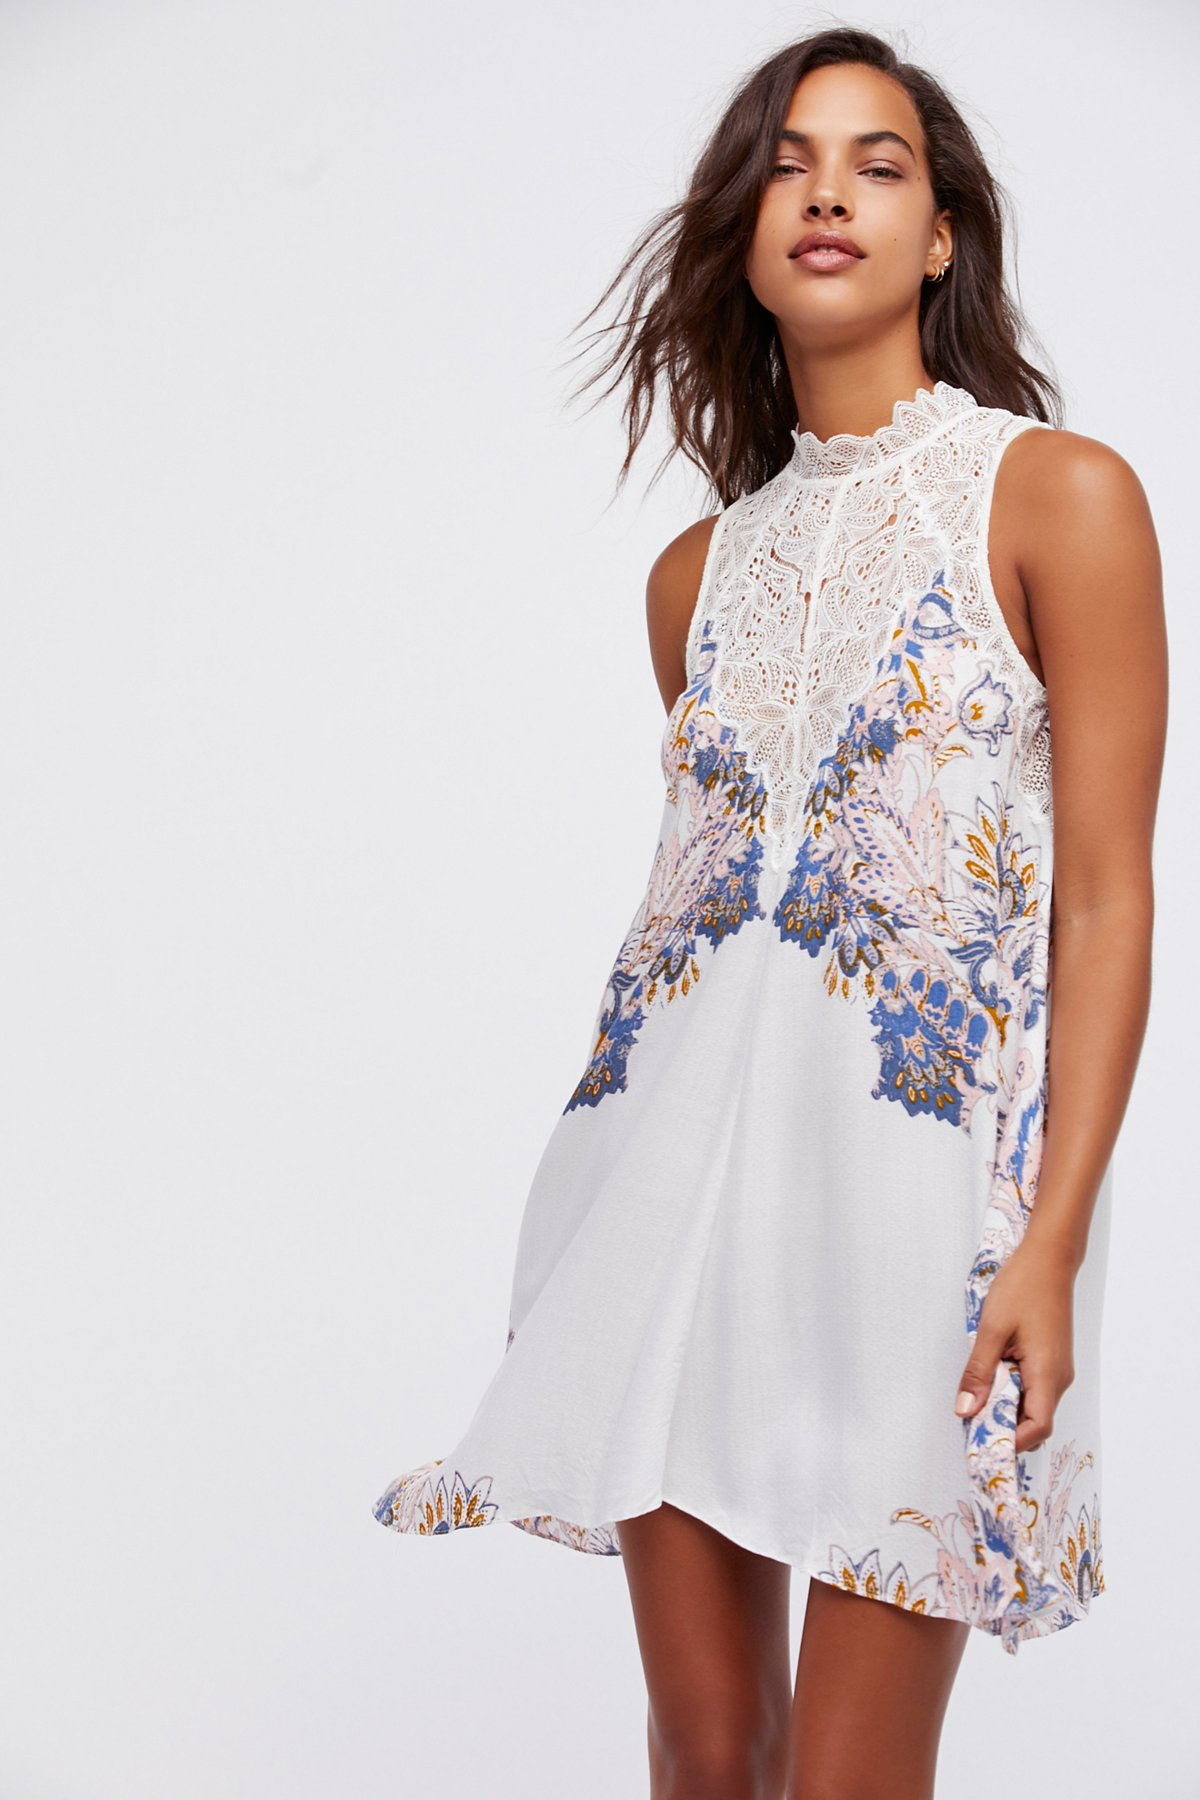 Sexy Babydoll Amp Swing Slip Dresses For Women Free People